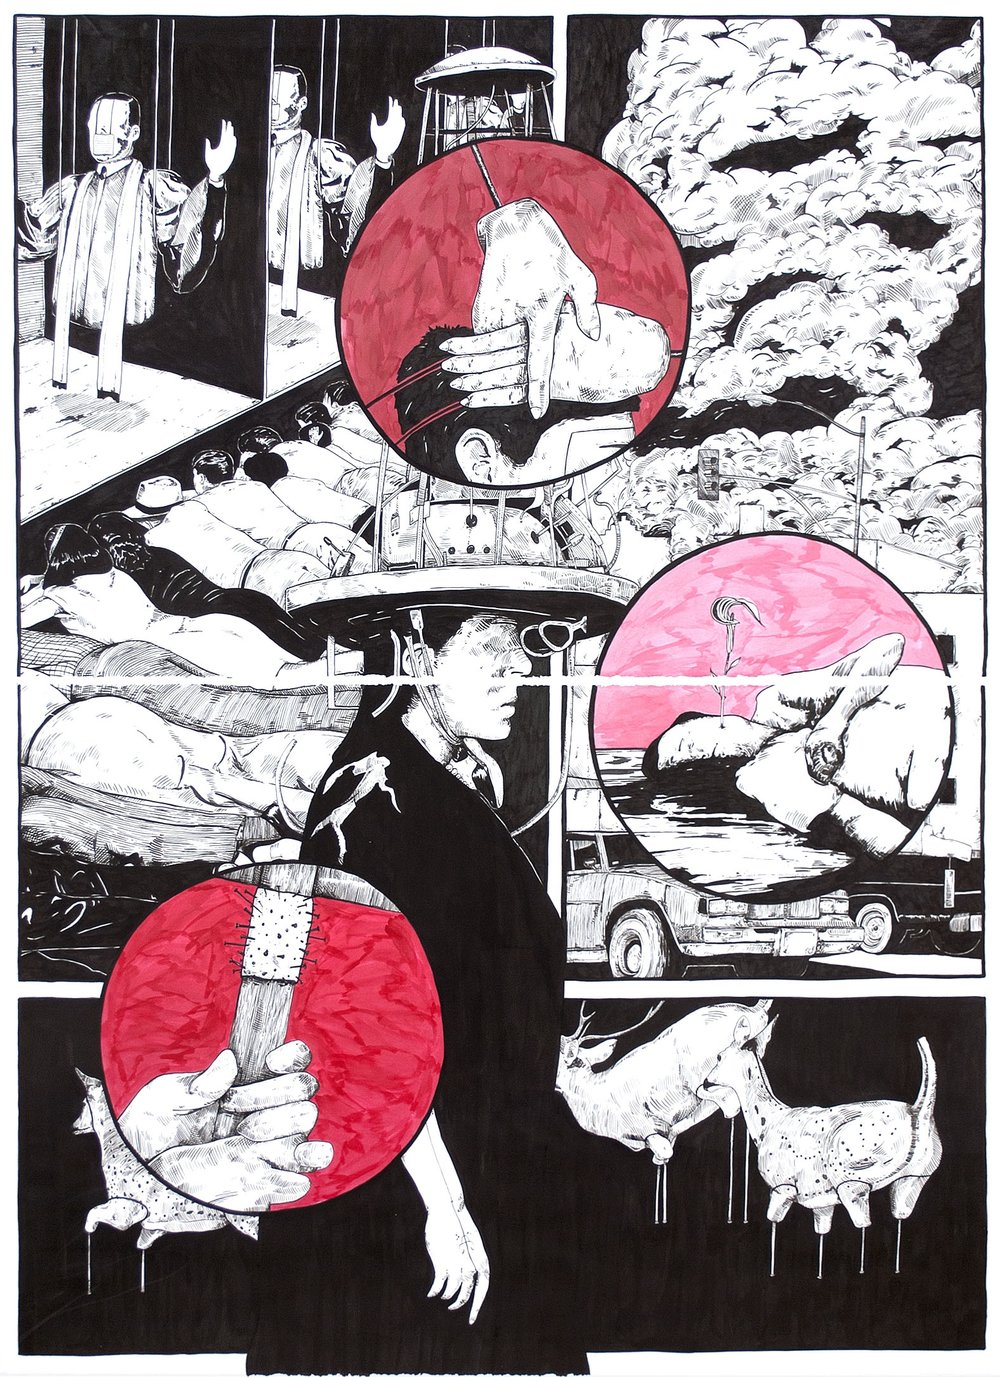 "Lower Than the Lowest Animal #7  , 2014   60 x 44"" (diptych), india ink on paper"